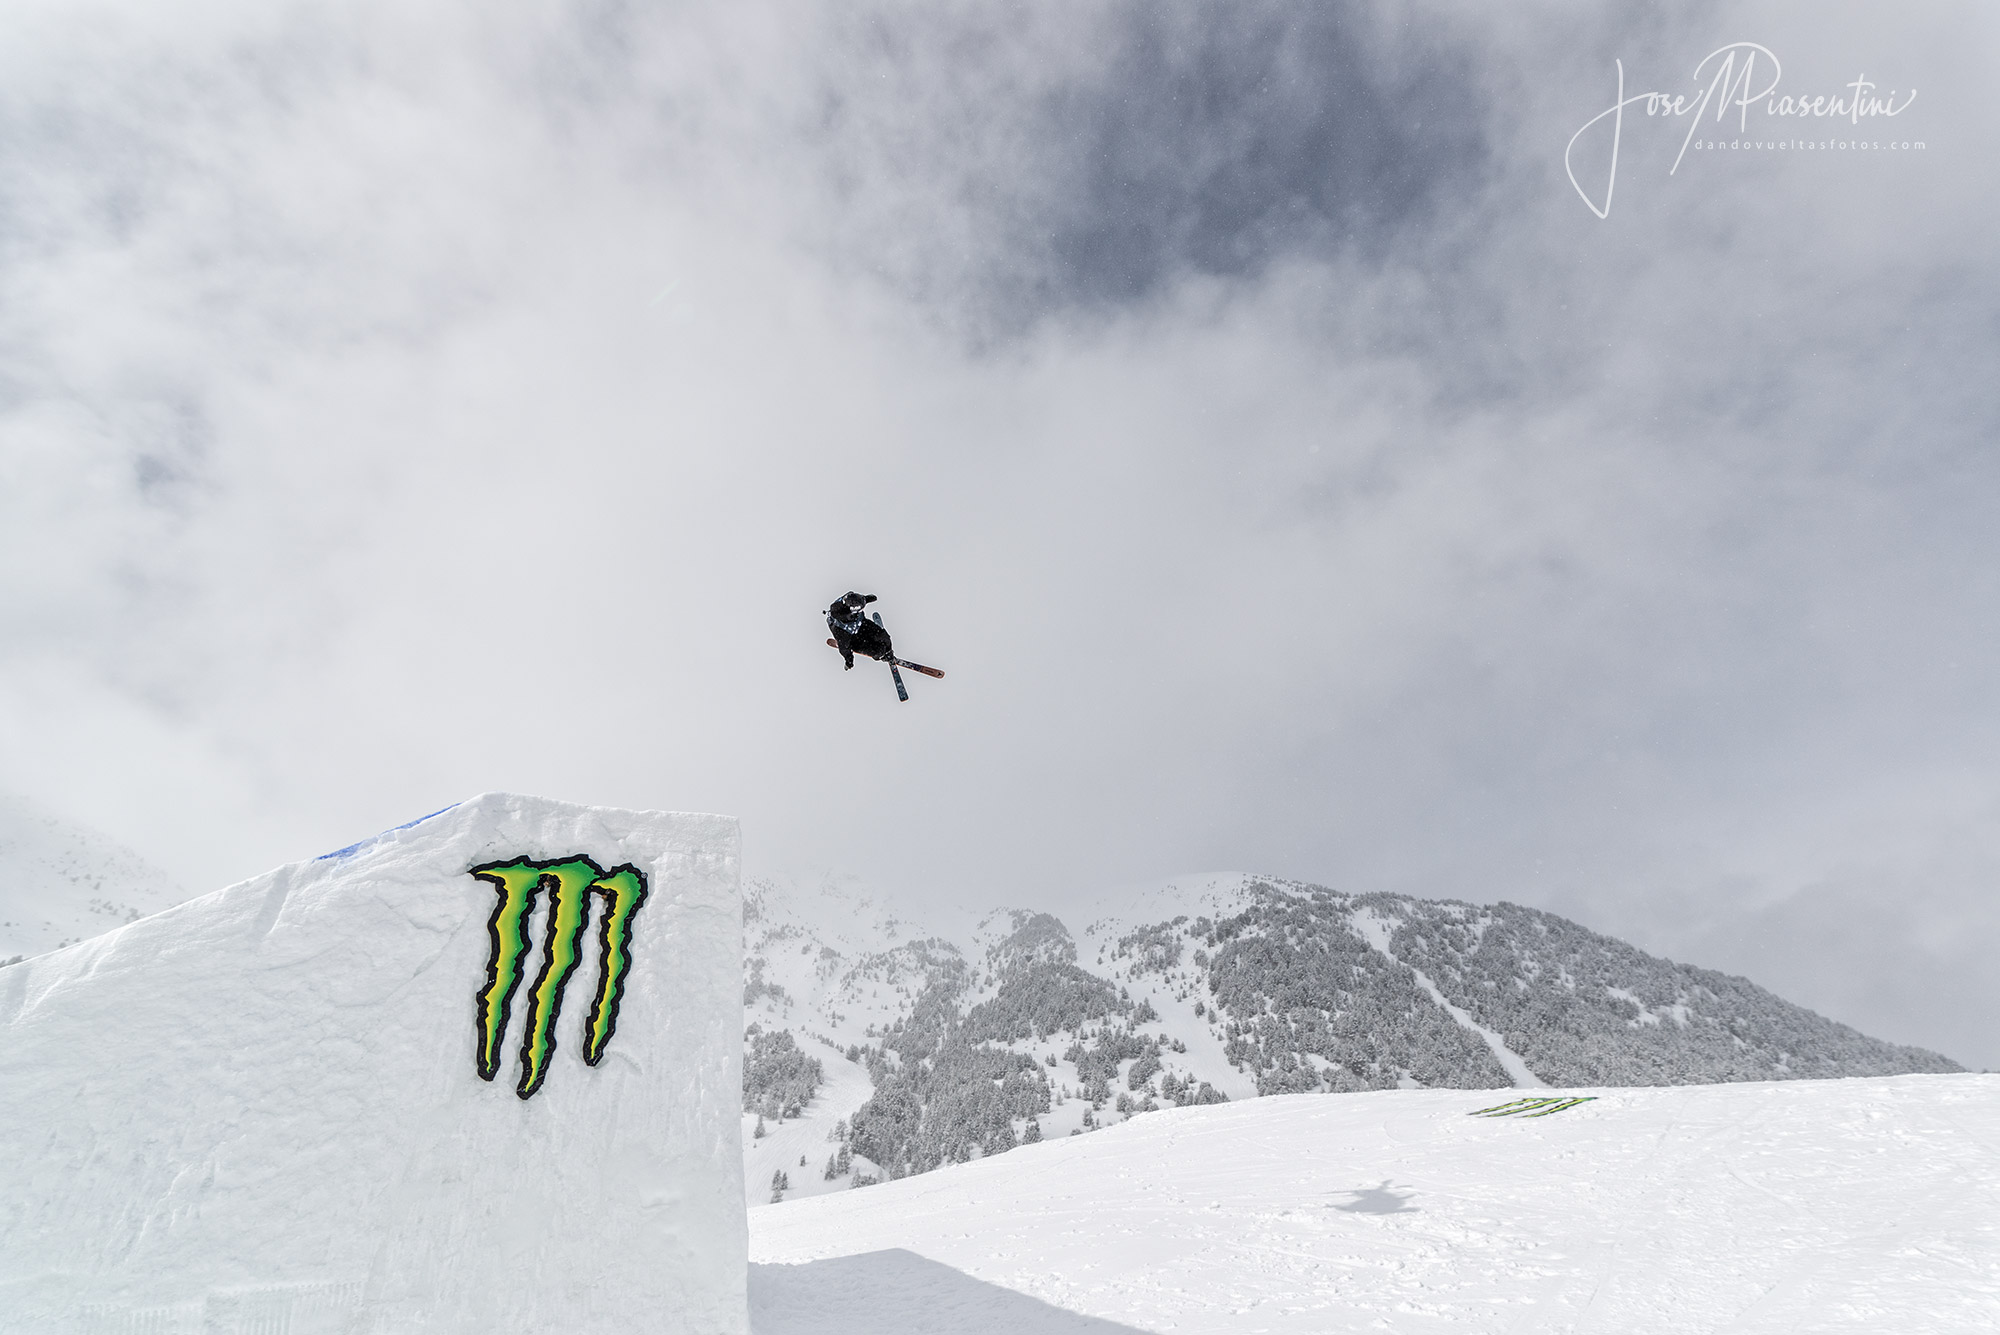 Monster freeski rider